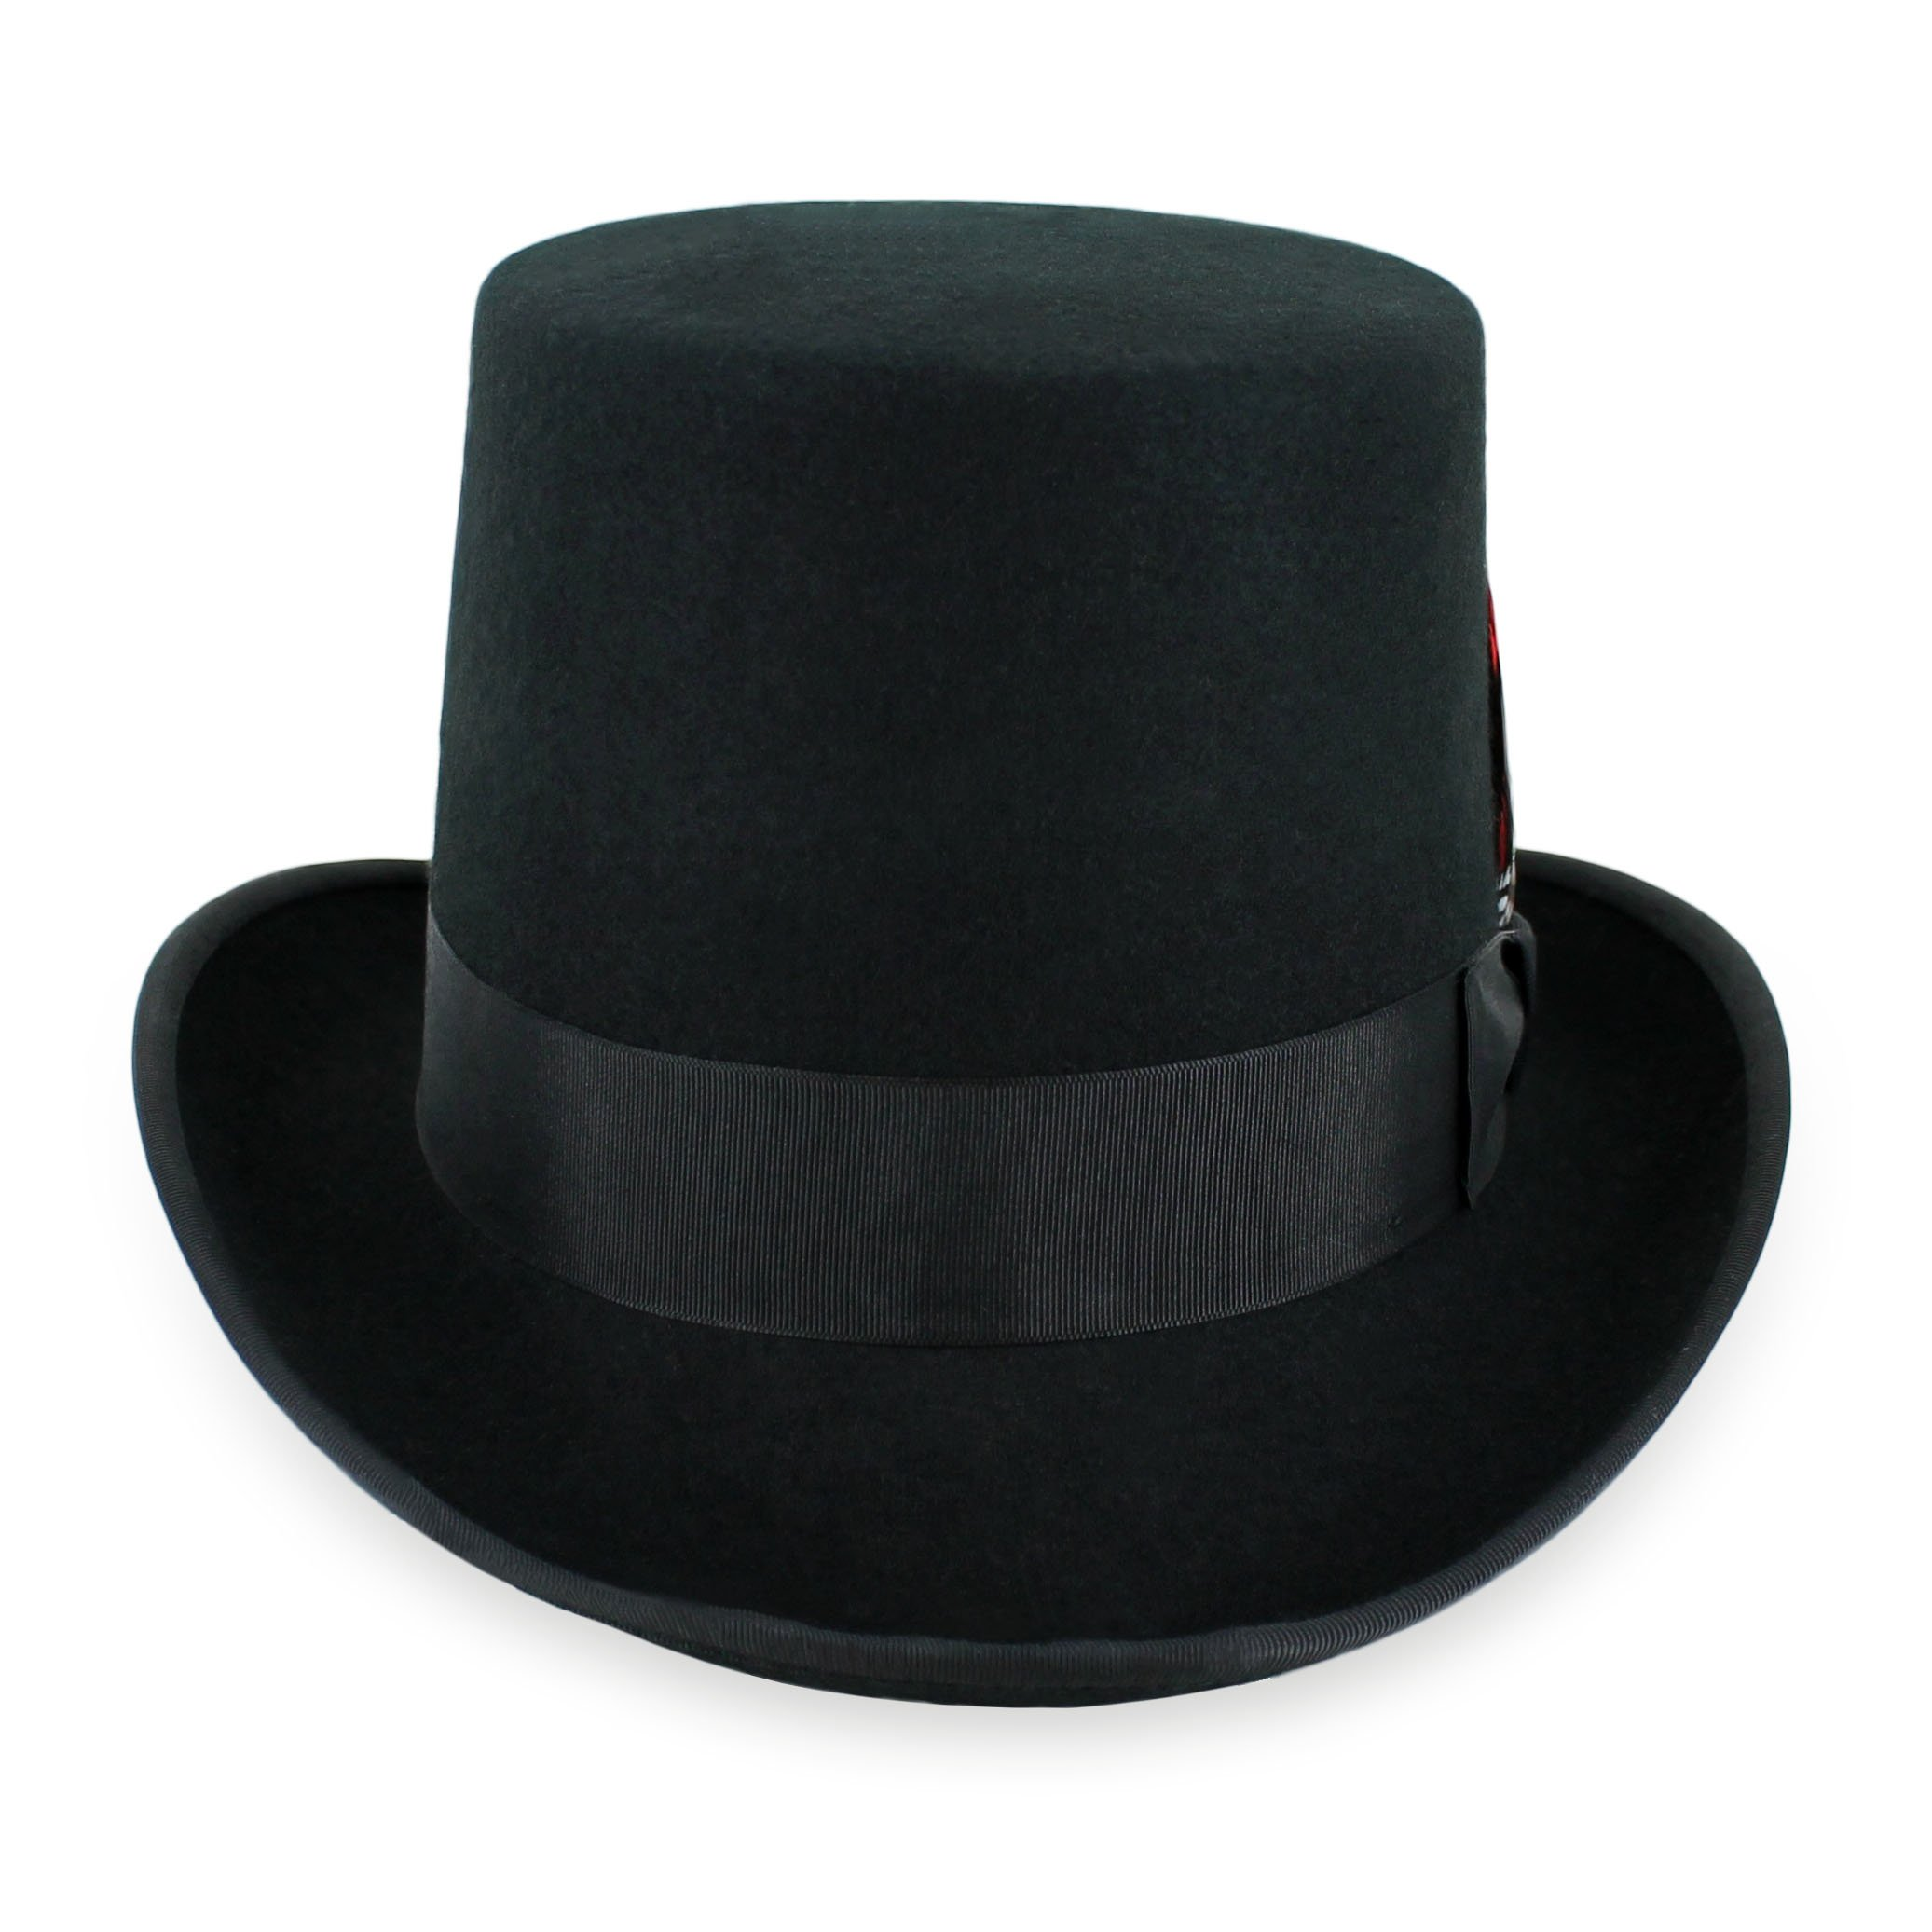 Belfry Topper 100% Wool Satin Lined Men's Top Hat in Black Available in 4 Sizes (XXL, Black)